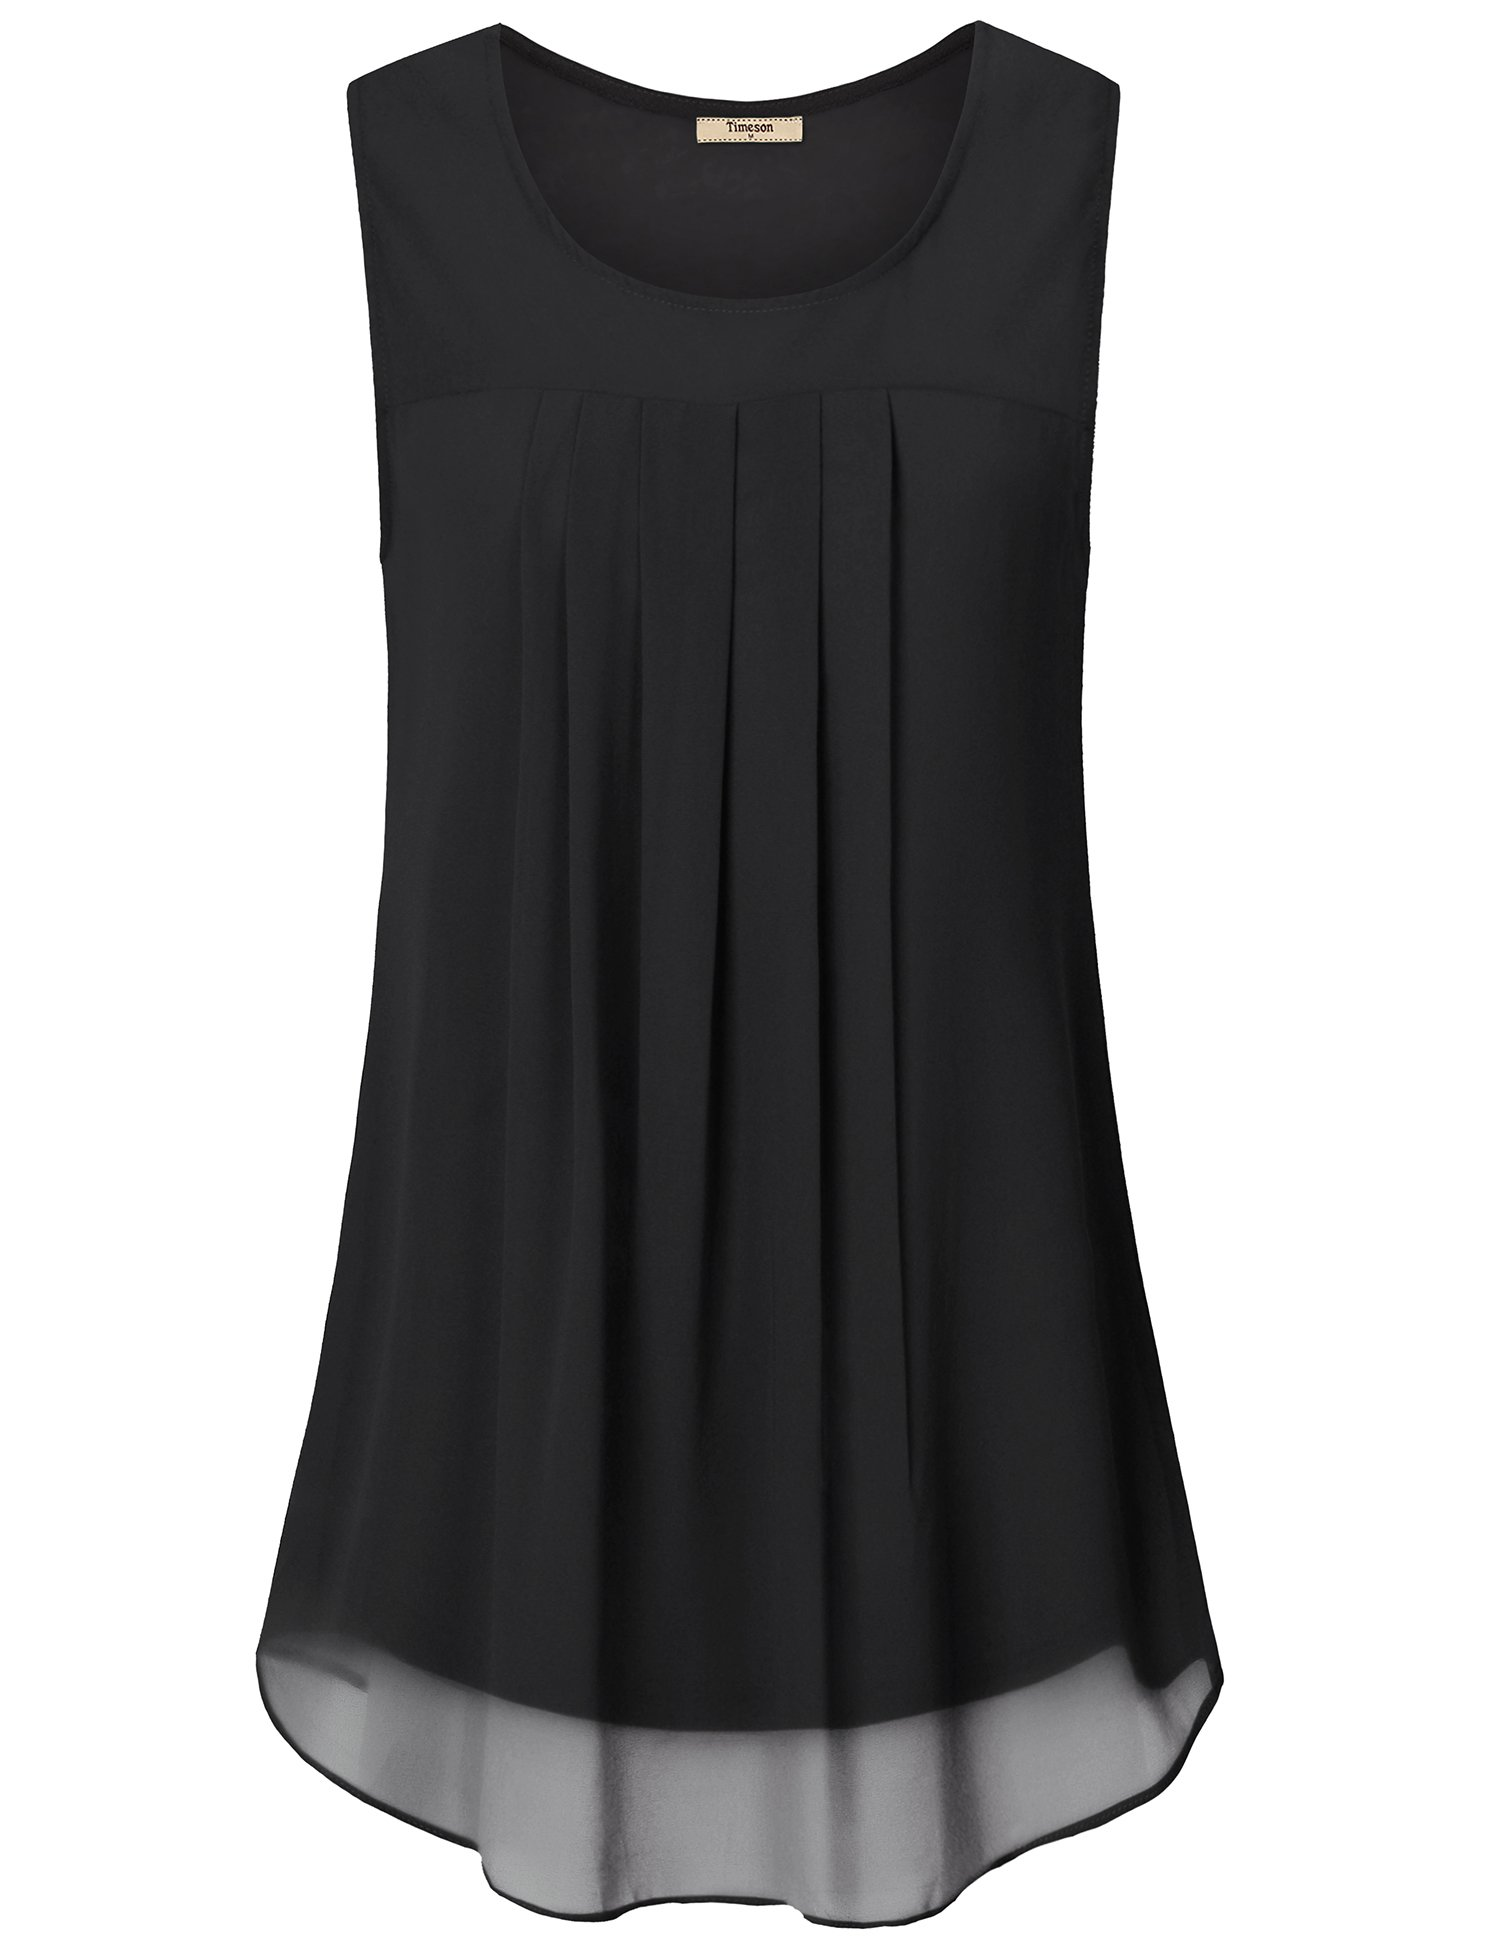 Timeson Sleeveless Blouses for Women,Chiffon Tank Top for Women, Womens Round Neck Tank Tops Sleeveless Loose Fit Summer Tunic Top for Leggings Black Large